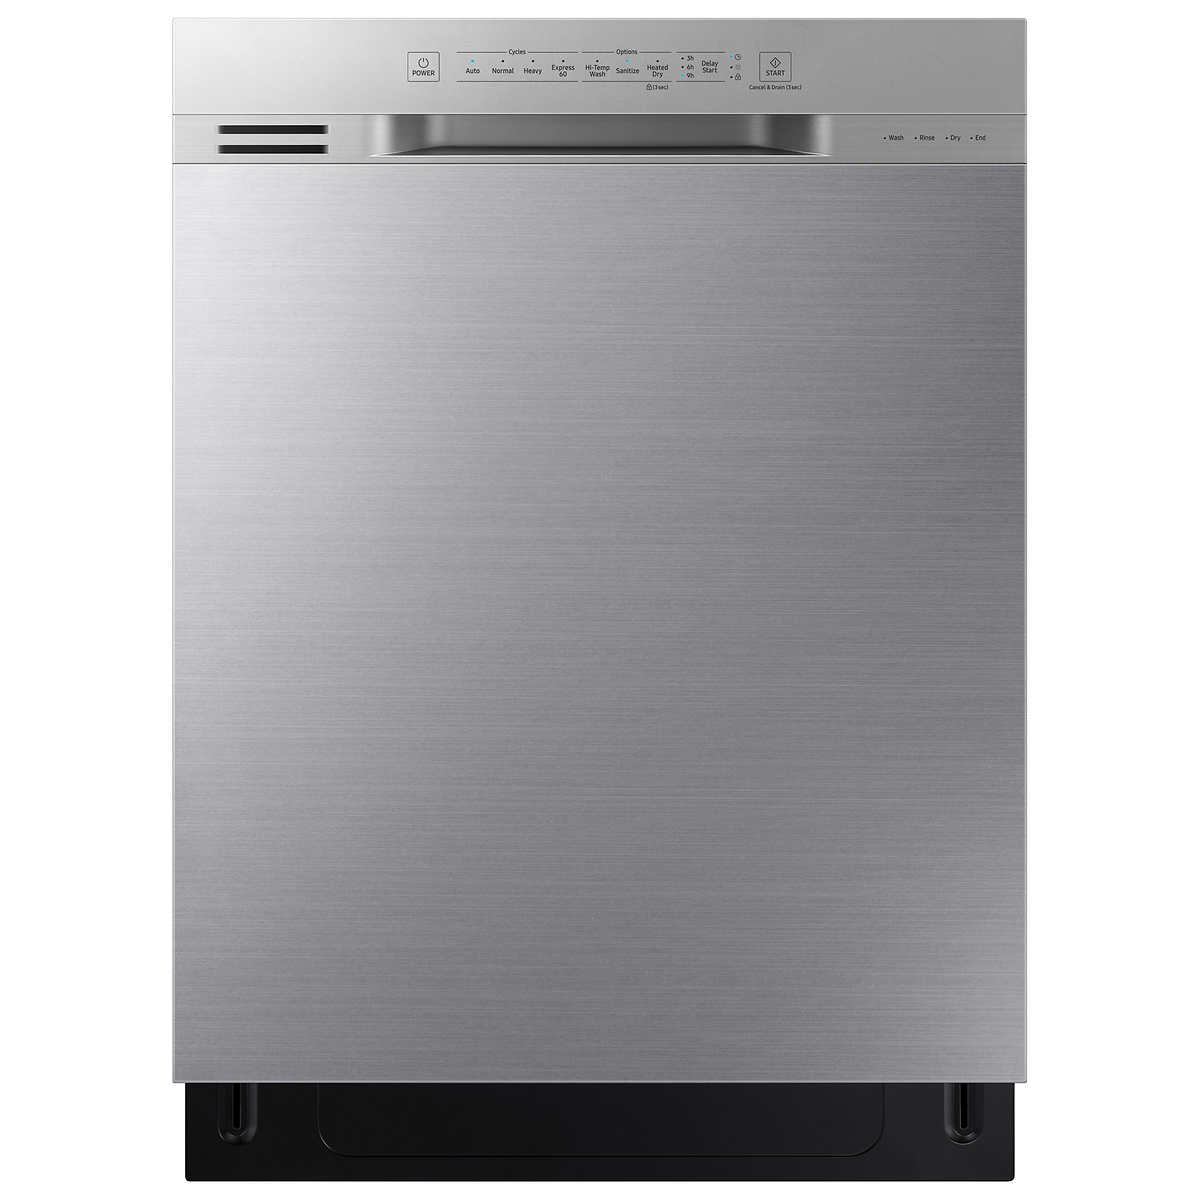 Samsung Front Control Dishwasher with Stainless Steel Interior in